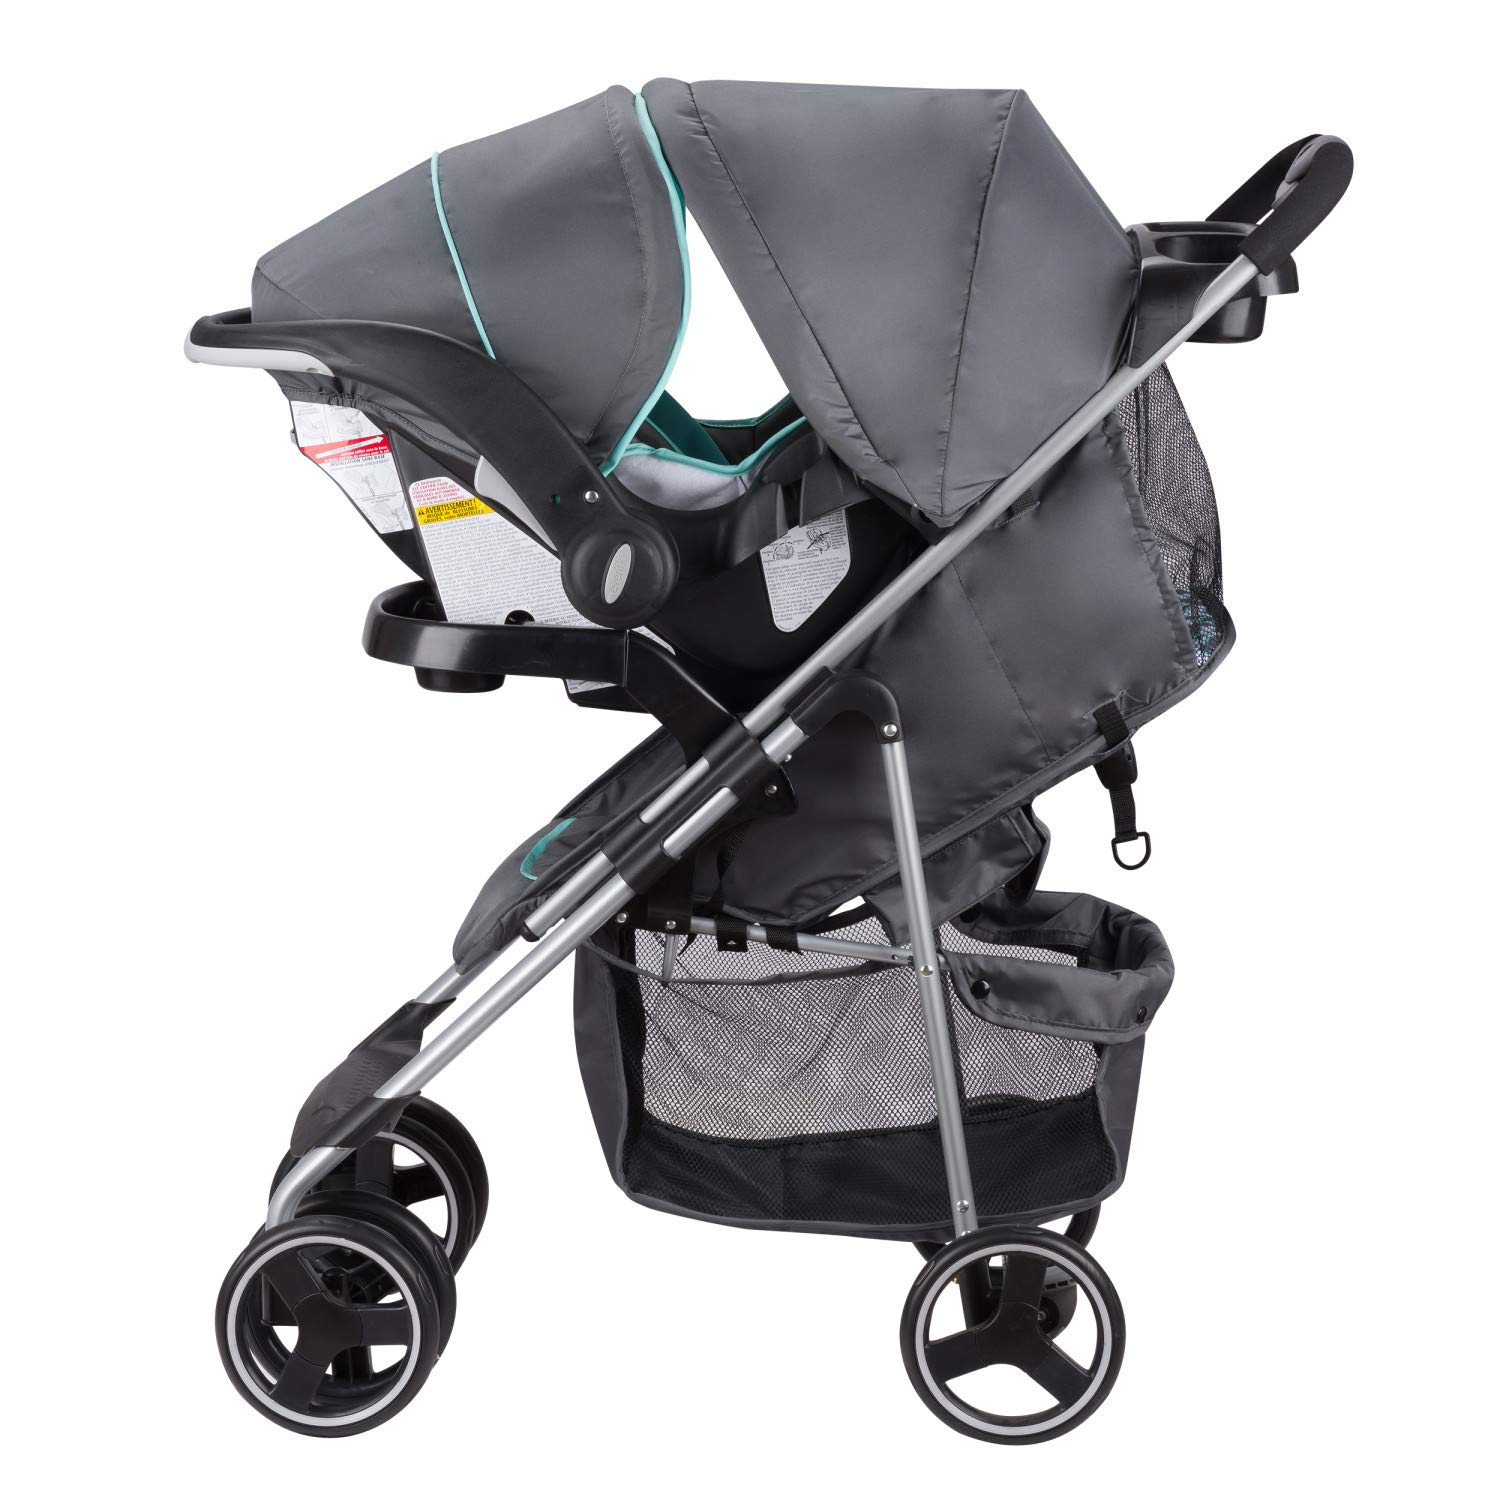 Evenflo Vive Travel System with Embrace Infant Car Seat, Spearmint Spree by Evenflo (Image #18)